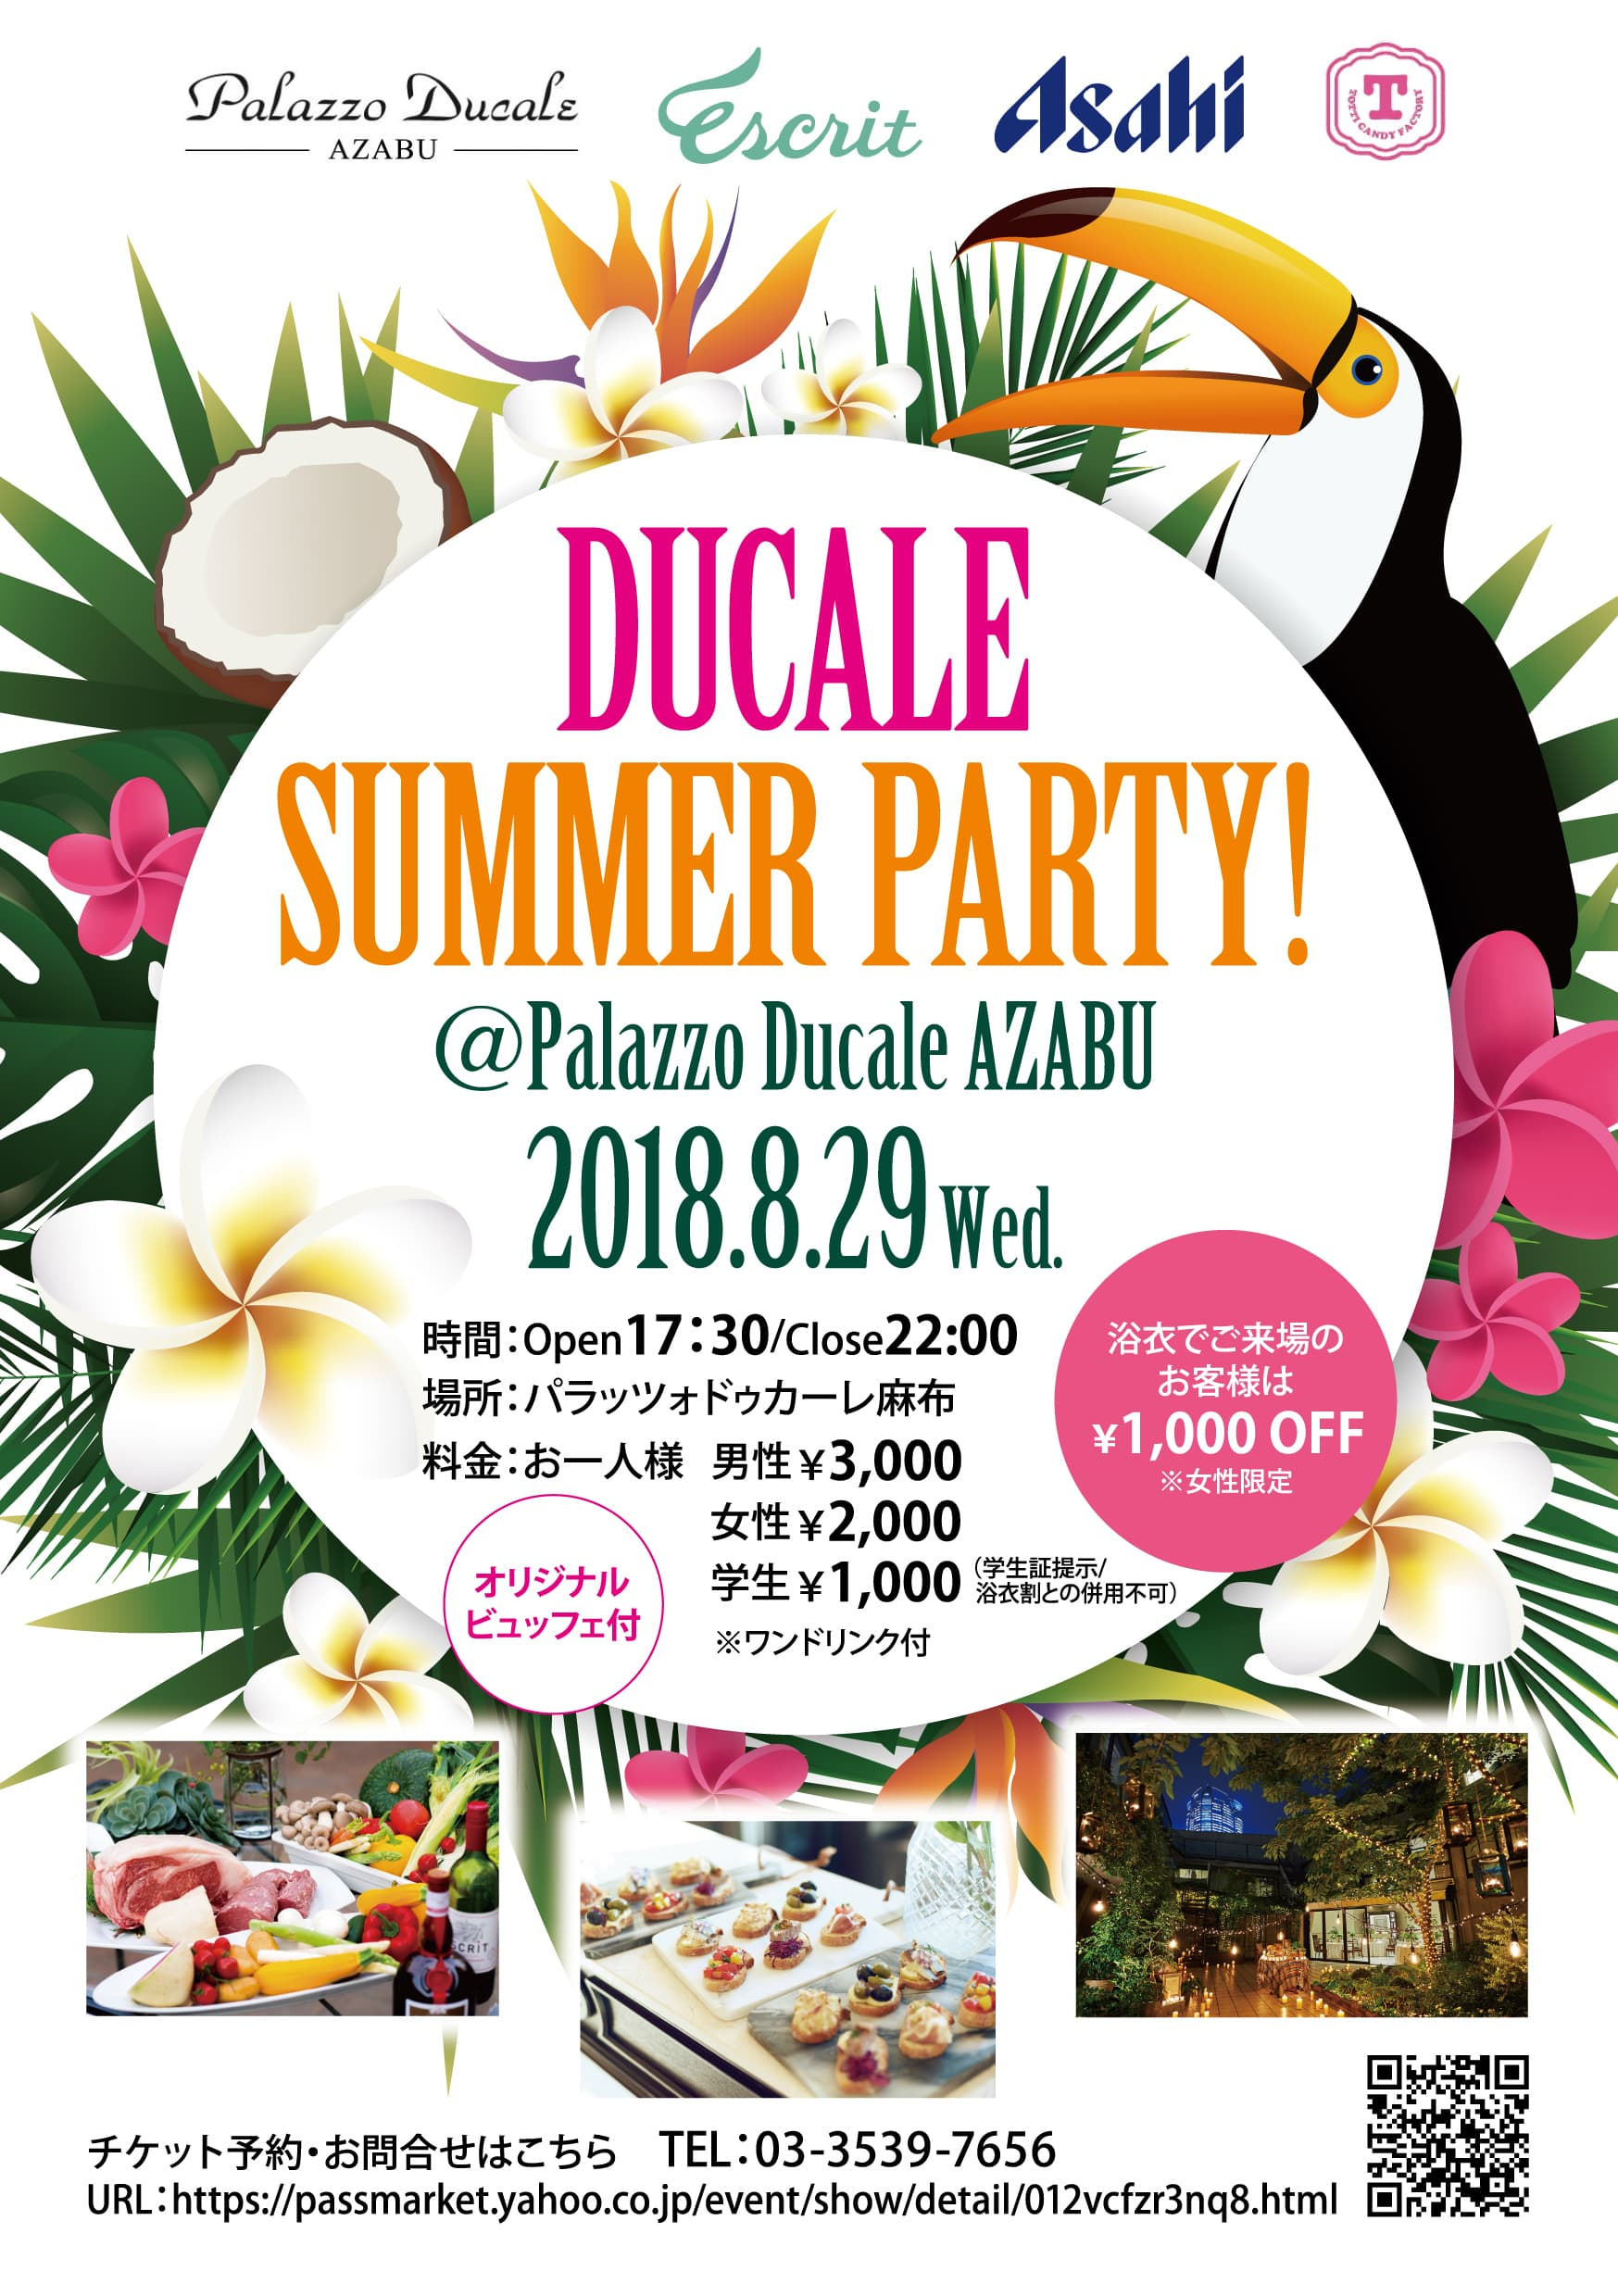 DUCALE SUMMER PARTY!